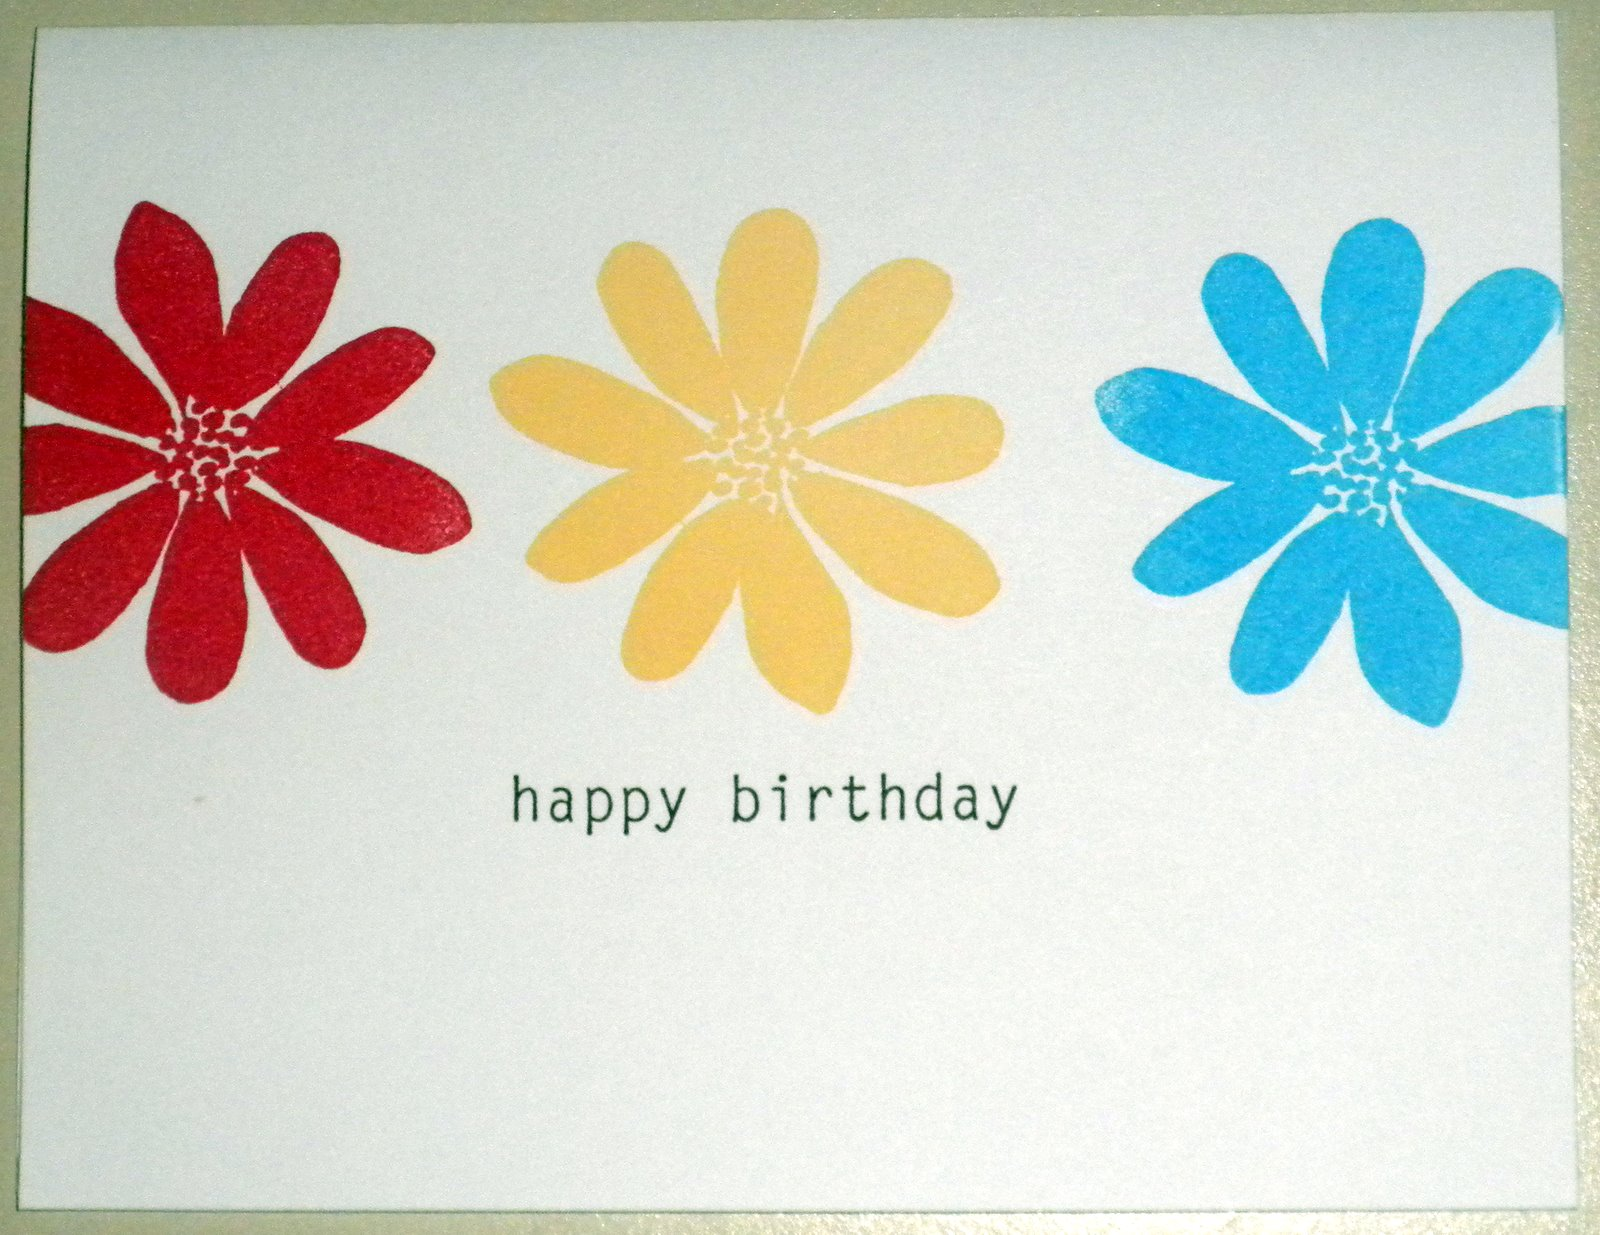 Kari kards december 2010 stamp impress flower stampin up happy birthday izmirmasajfo